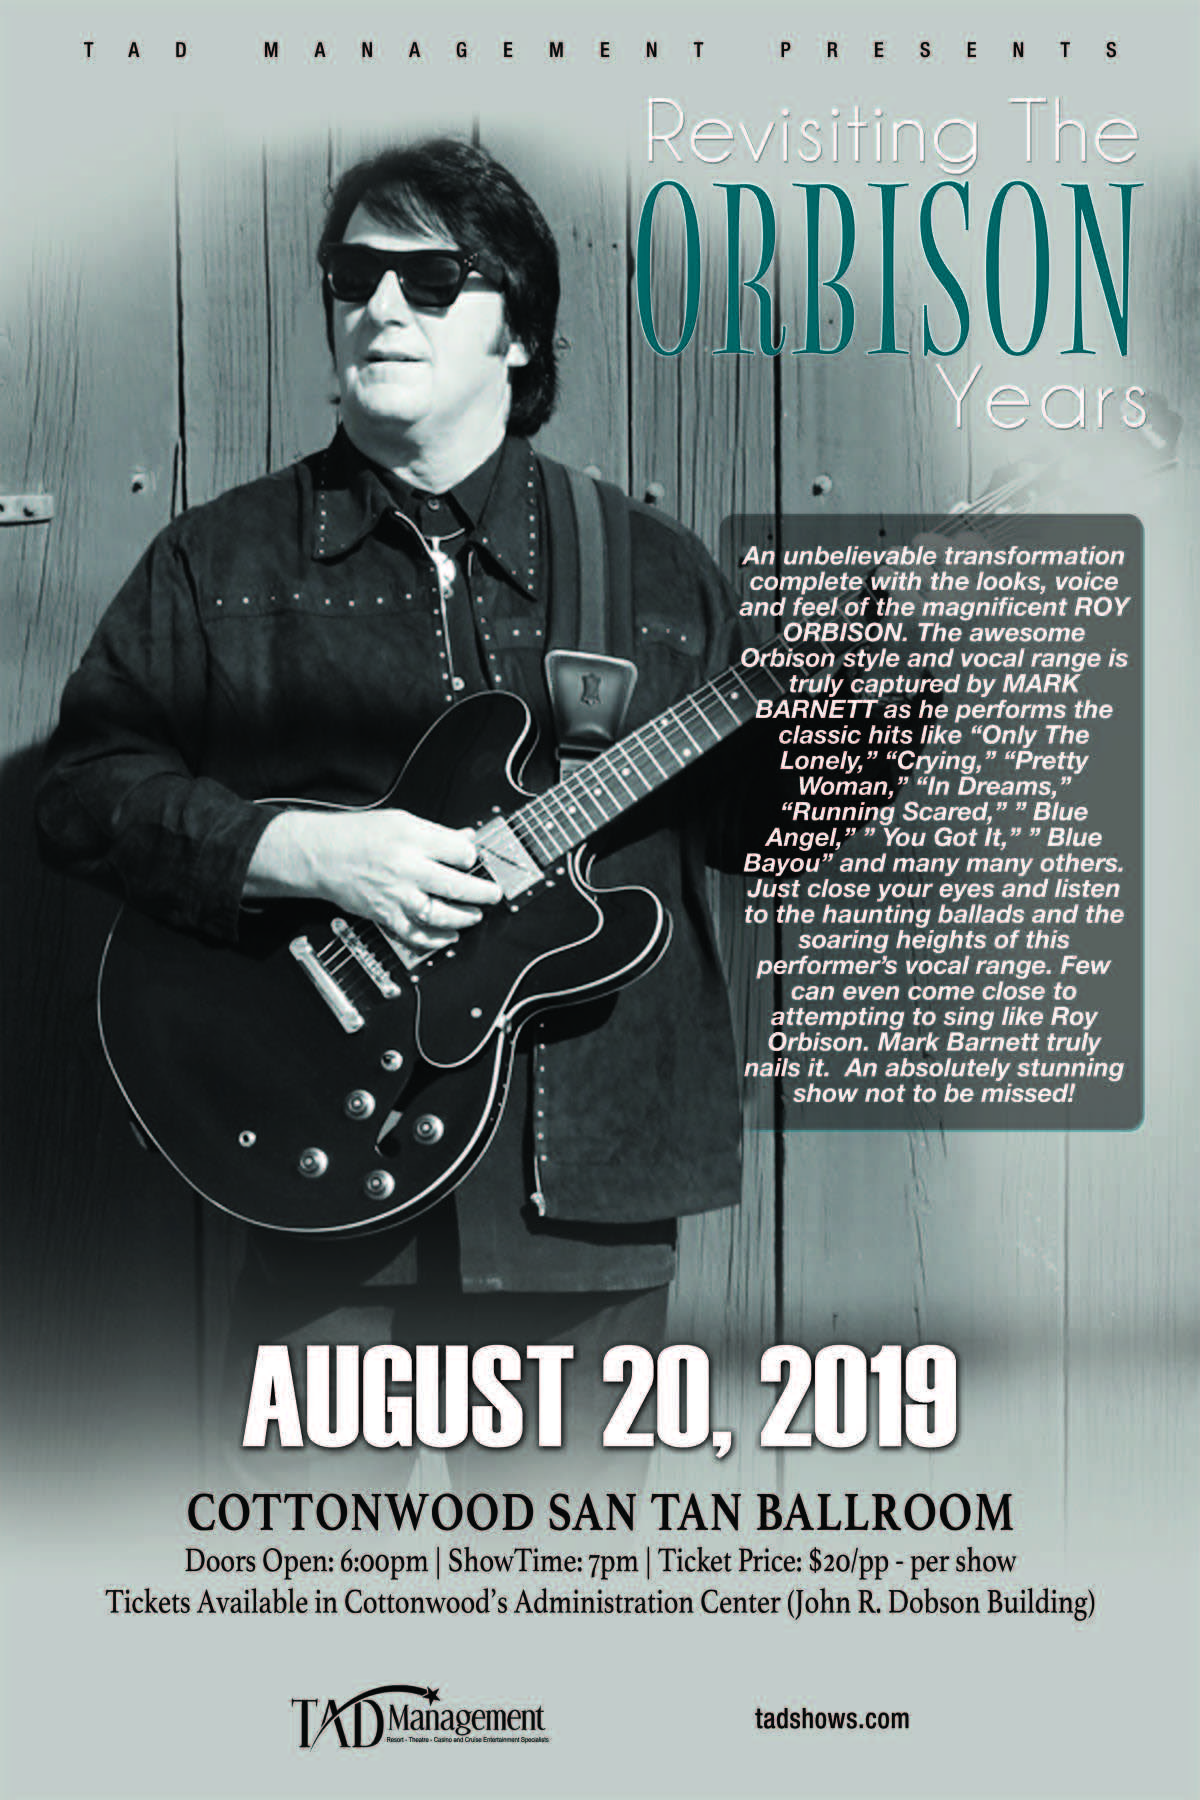 ORBISON YEARS banner image